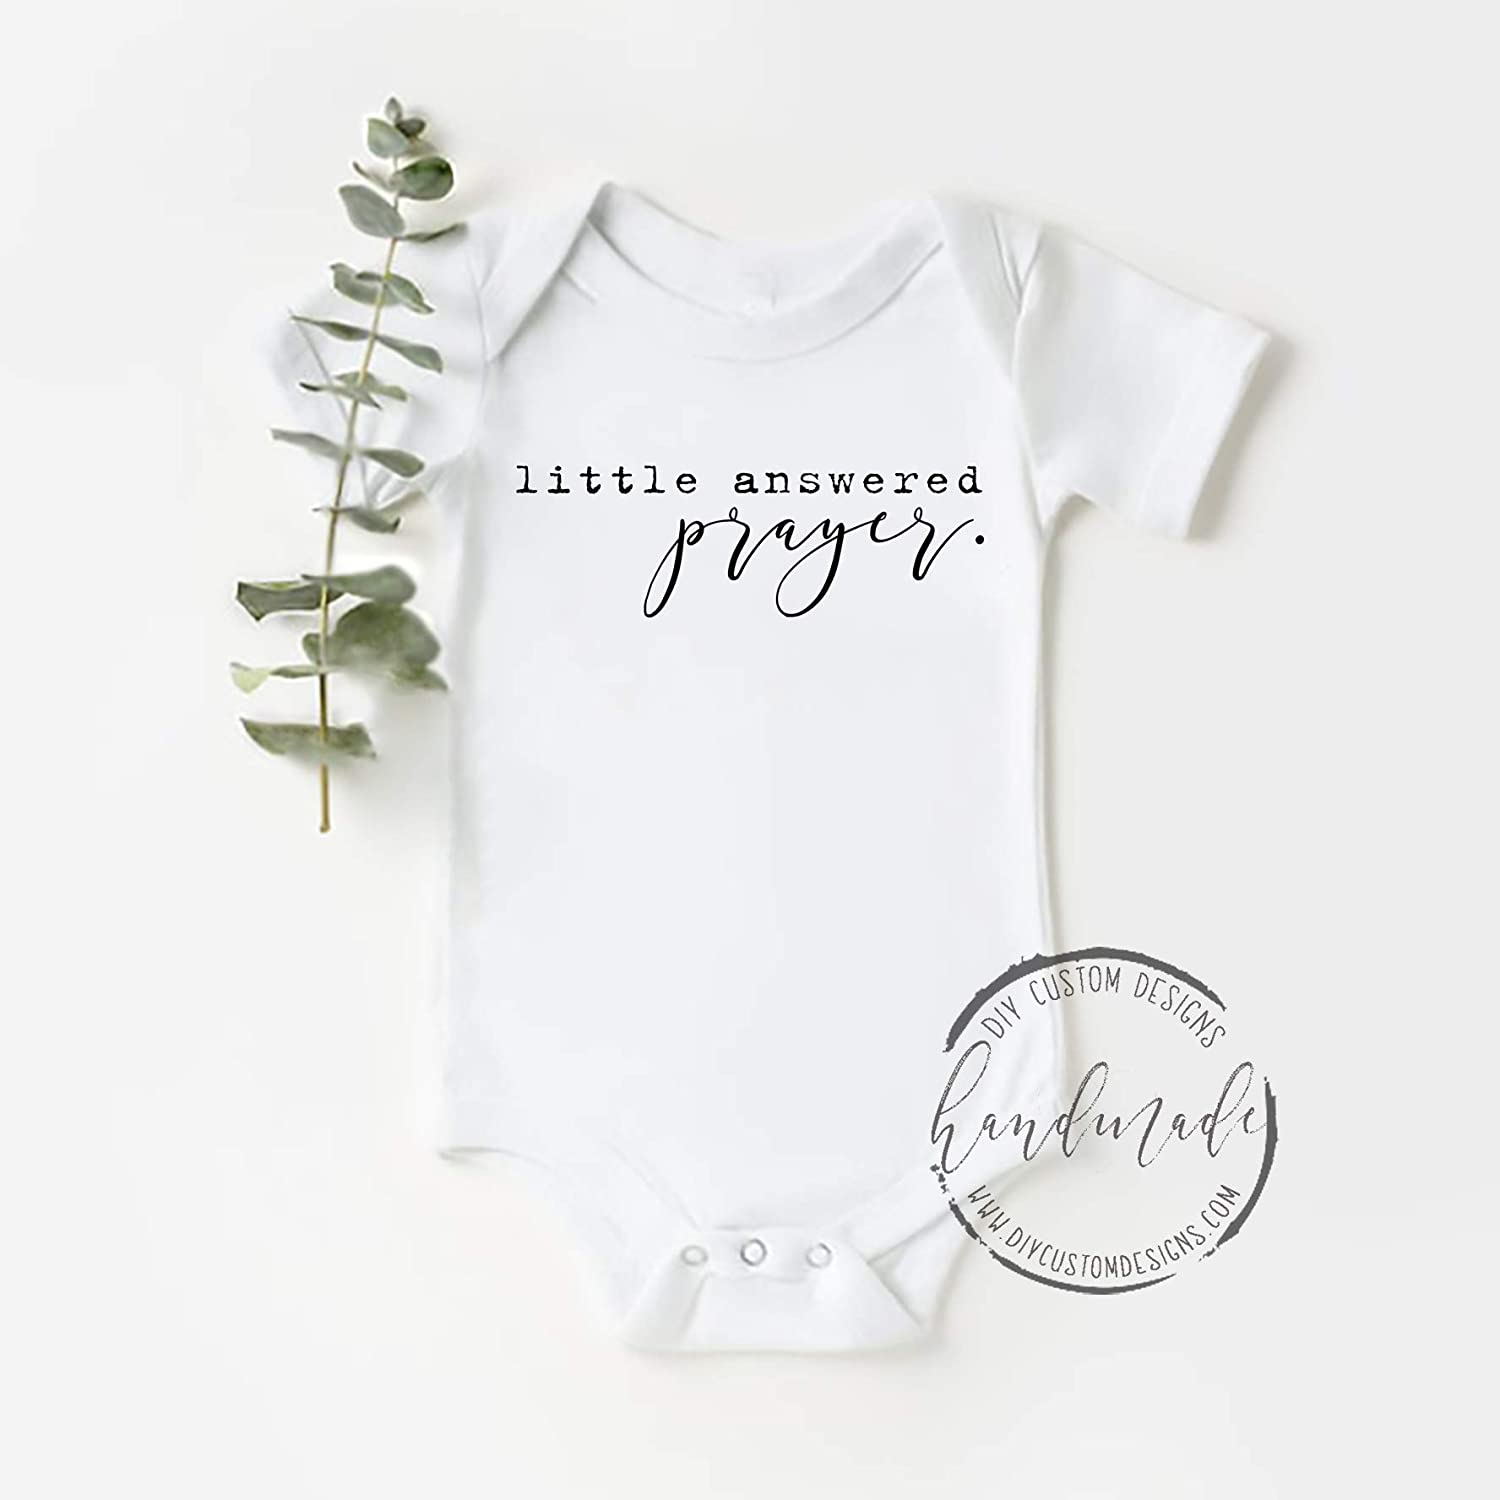 Little Answered Prayer Baby onesie New Baby gift Baby Shower gift Coming home outfit Baby outfit Custom Baby Onesie Custom Onesie